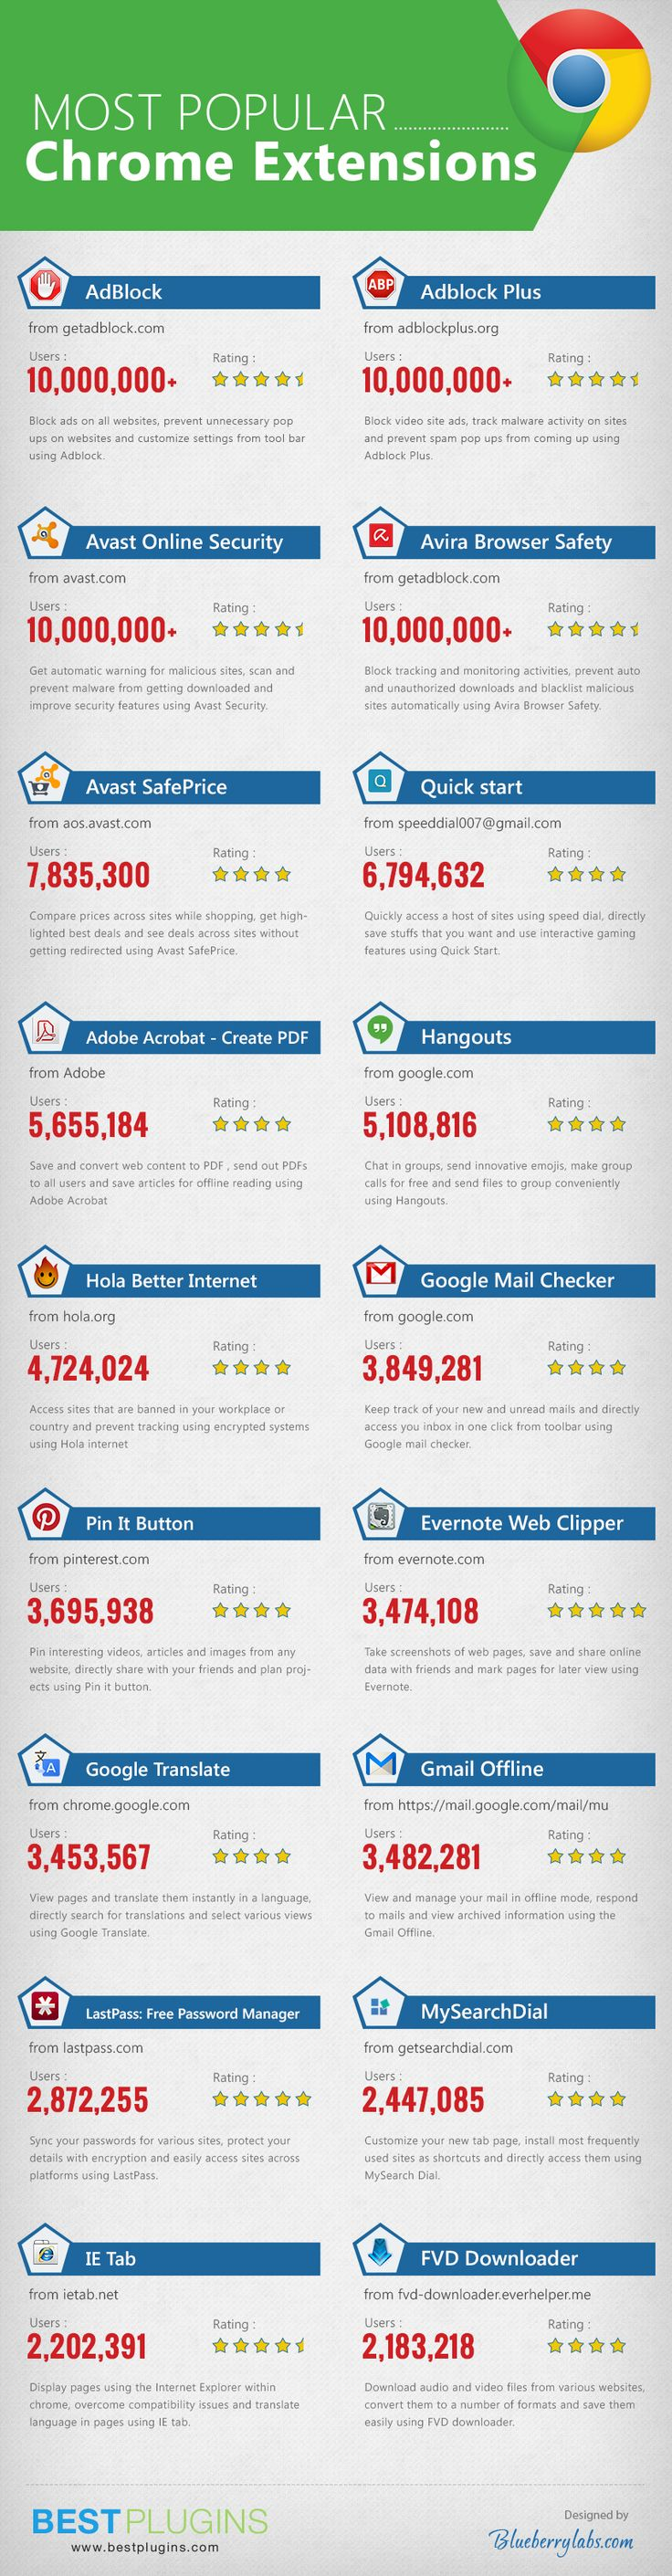 The 17 Most Popular Chrome Extensions [Infographic] http://www.wonderoftech.com/most-popular-chrome-extensions/?utm_content=buffer55414&utm_medium=social&utm_source=pinterest.com&utm_campaign=buffer